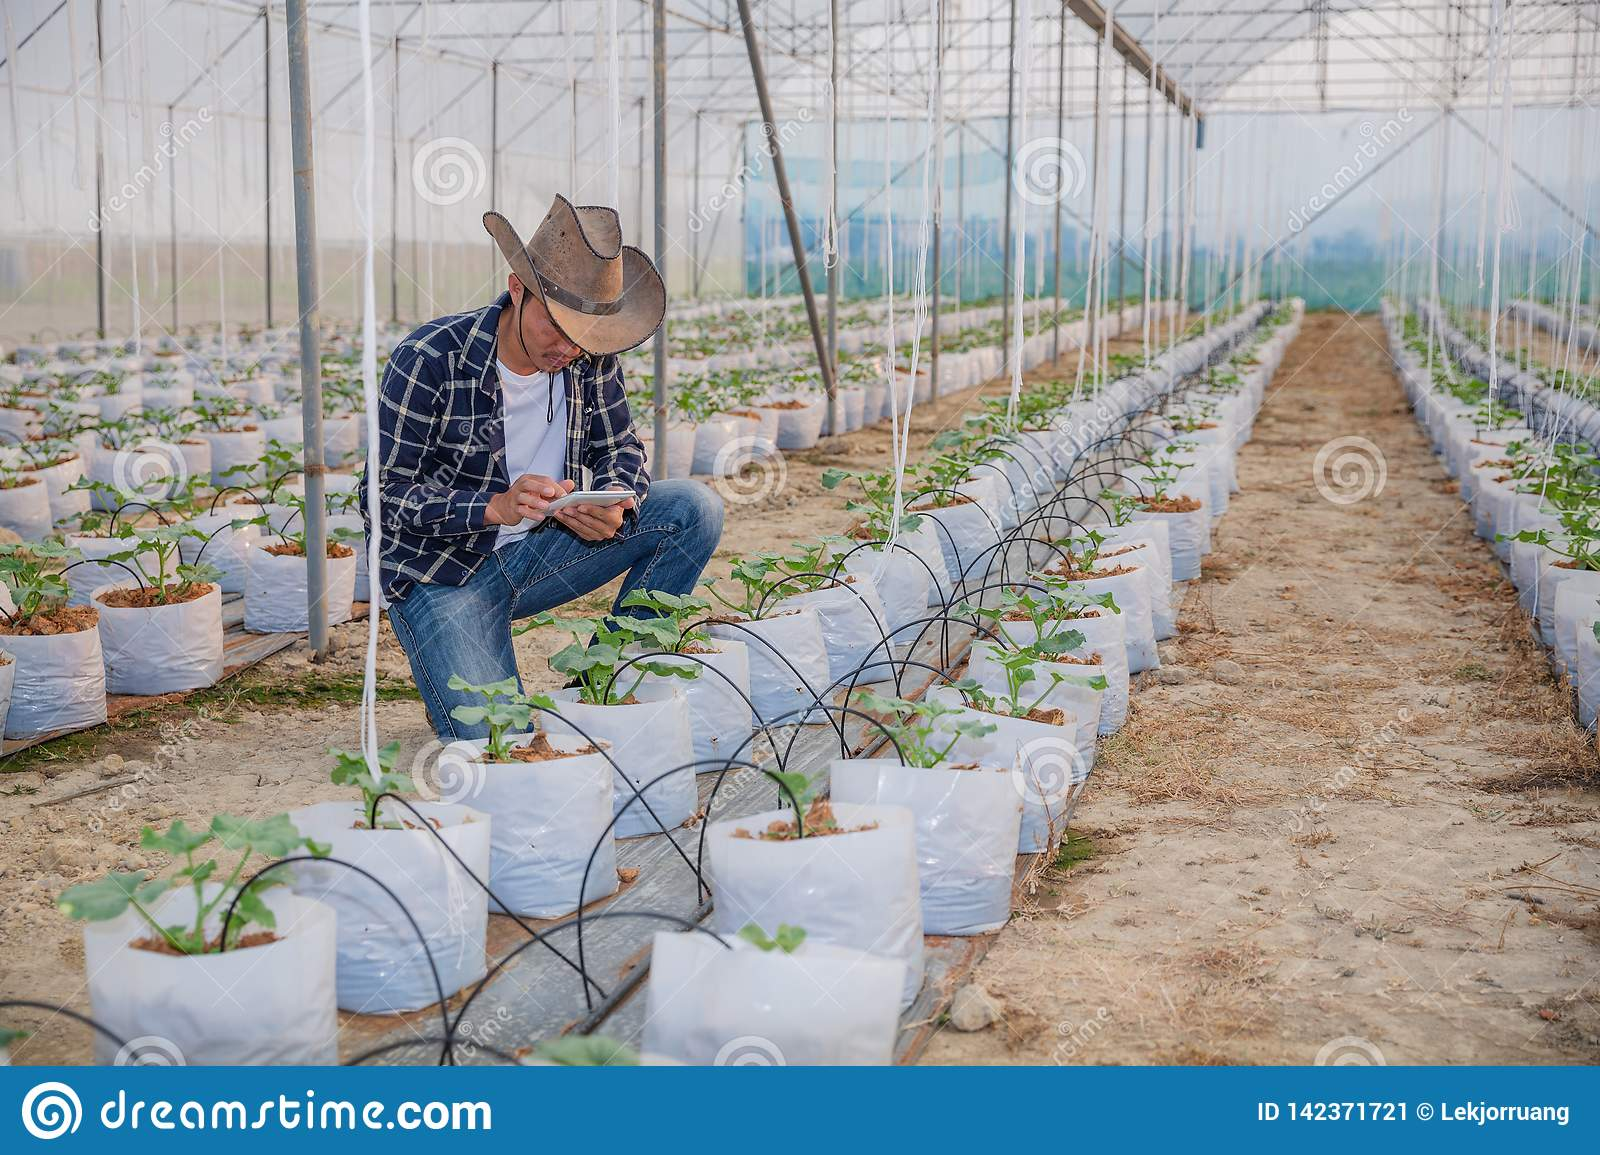 The agronomist examines the growing melon seedlings on the farm,  farmers and researchers in the analysis of the plant